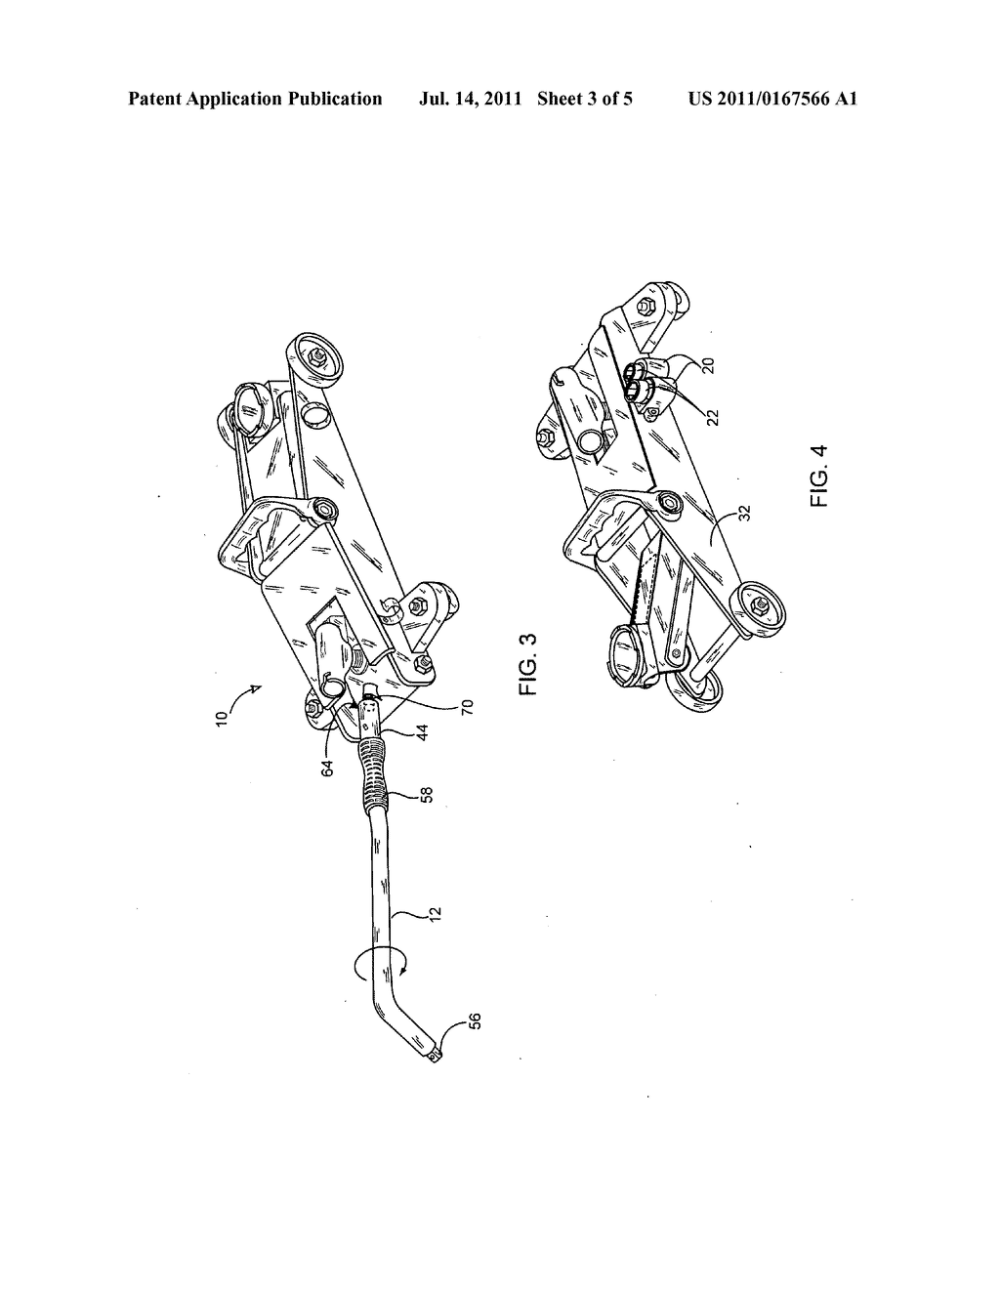 medium resolution of combined car jack and lug wrench assembly diagram schematic andcombined car jack and lug